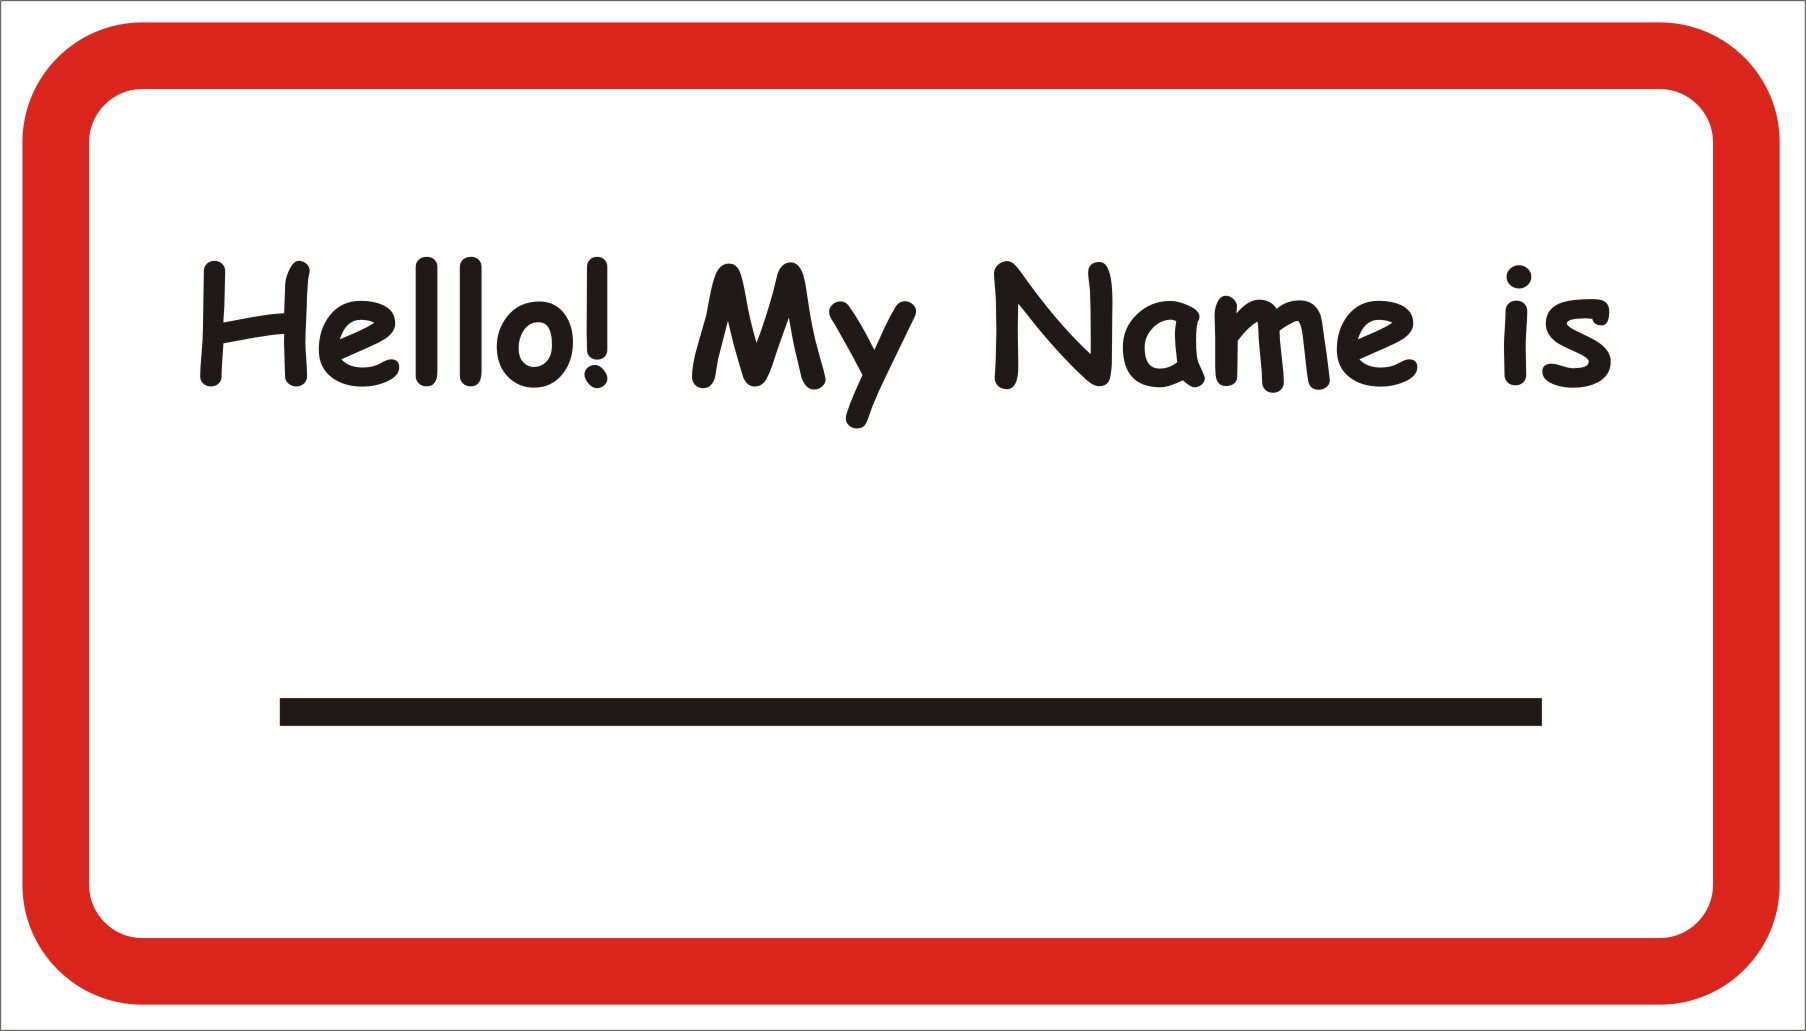 Name Labels Templates Free – Name Labels Templates Free